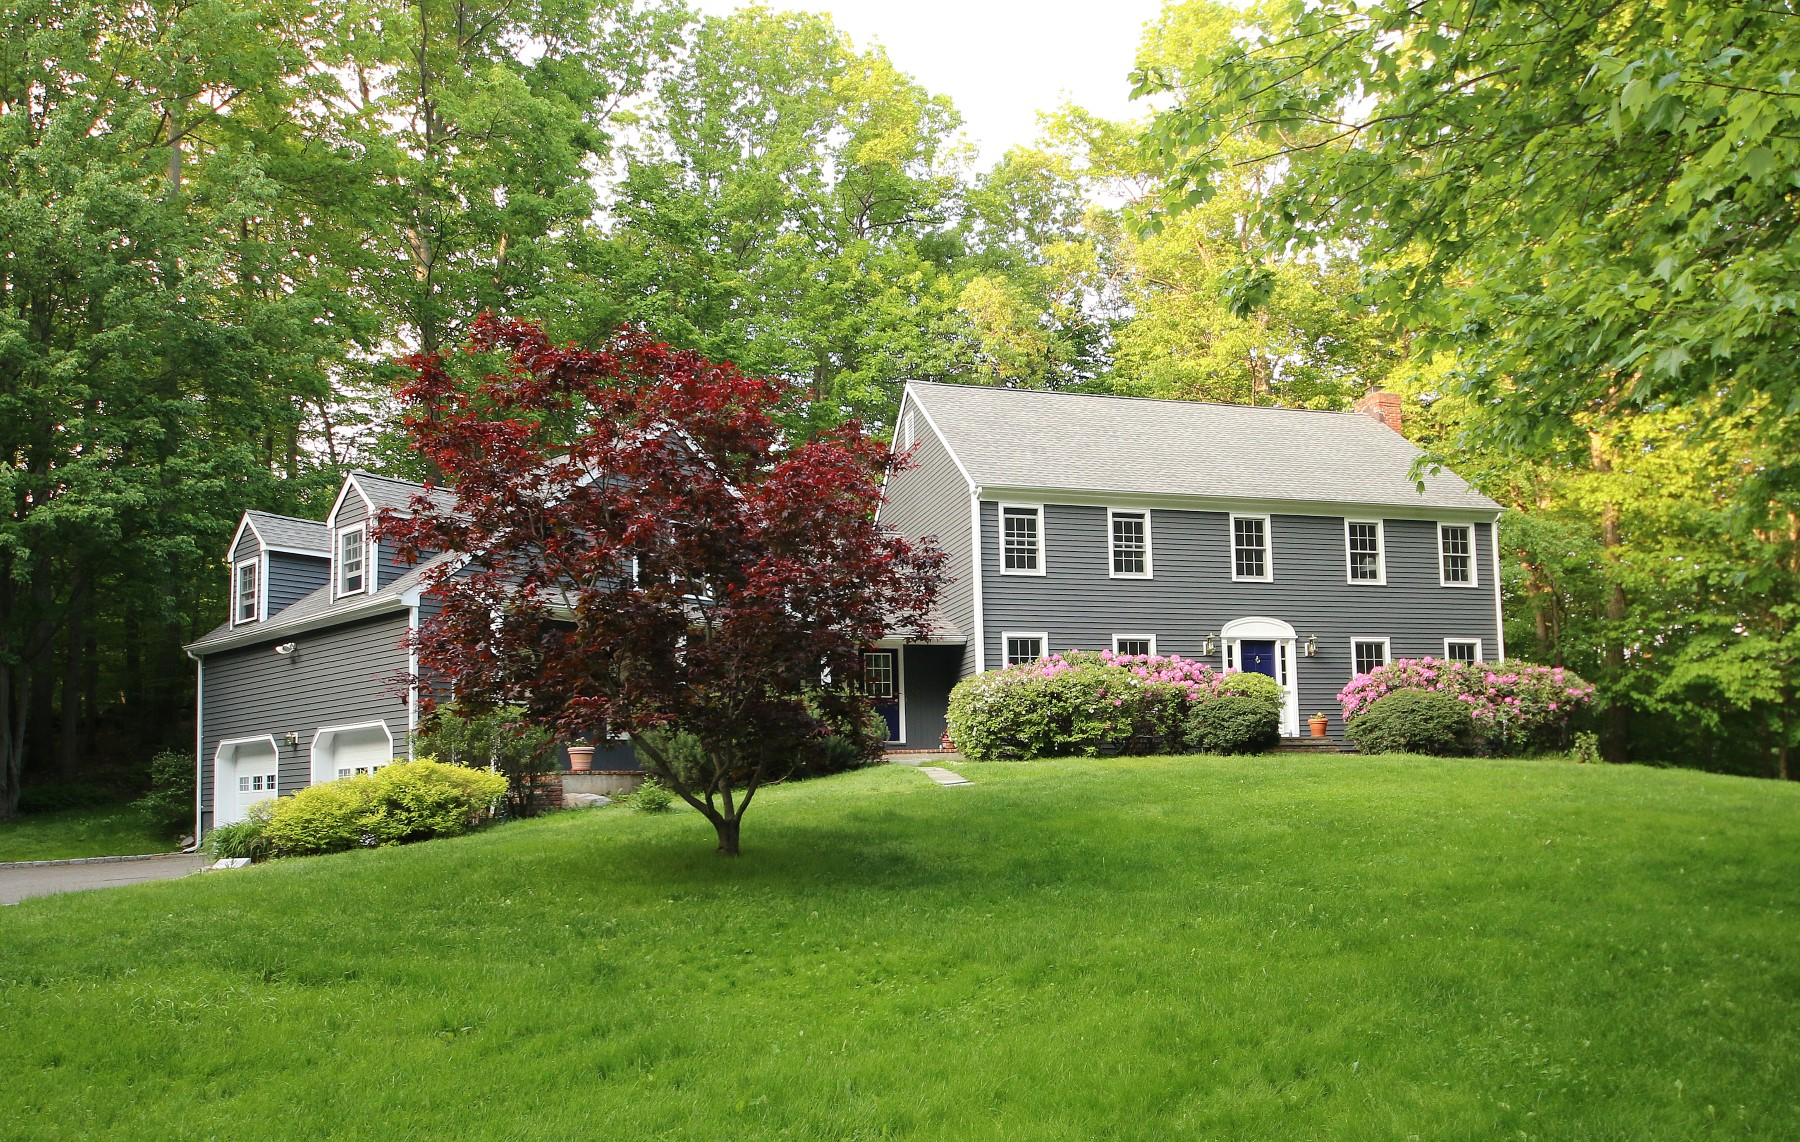 Single Family Home for Sale at Impressive Colonial 40 Lounsbury Lane Ridgefield, Connecticut, 06877 United States